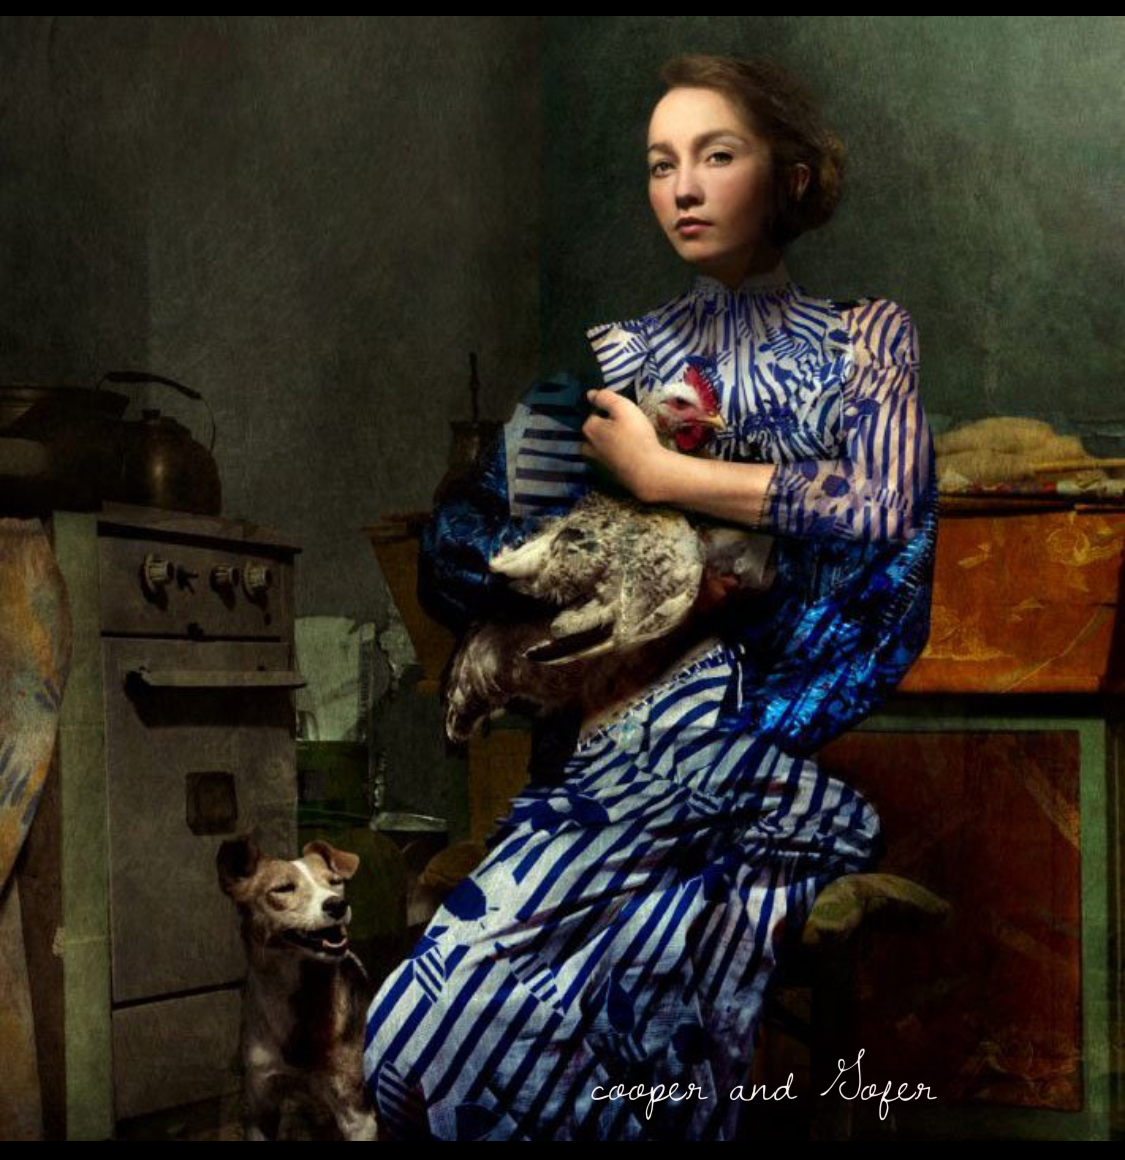 American artist Cooper and Gofer art photograph Women is Culture